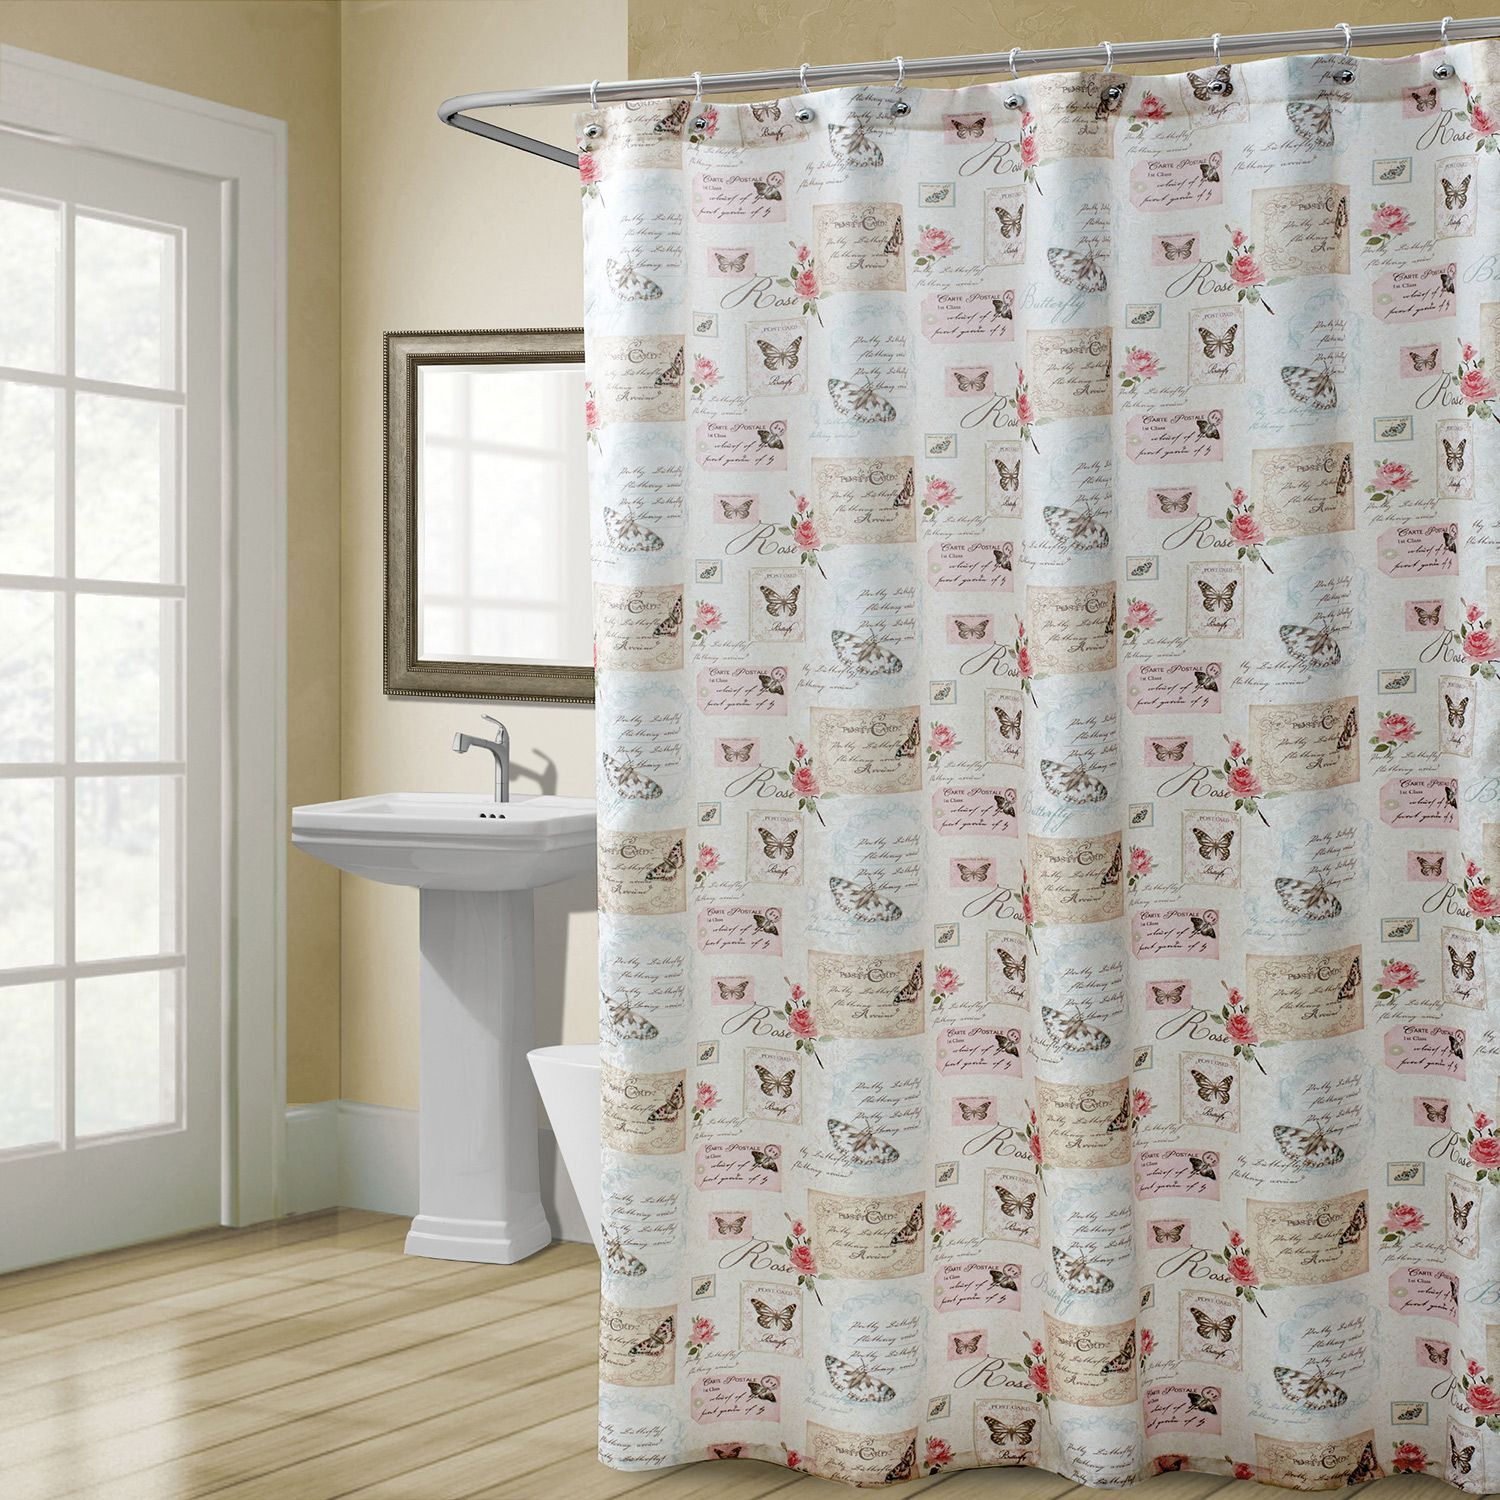 Capture The Majestic Beauty Of Nature With The Butterfly Moments Shower  Curtain. This Polyester Accessory, From Chapel Hill By Croscill, Has A  Design.